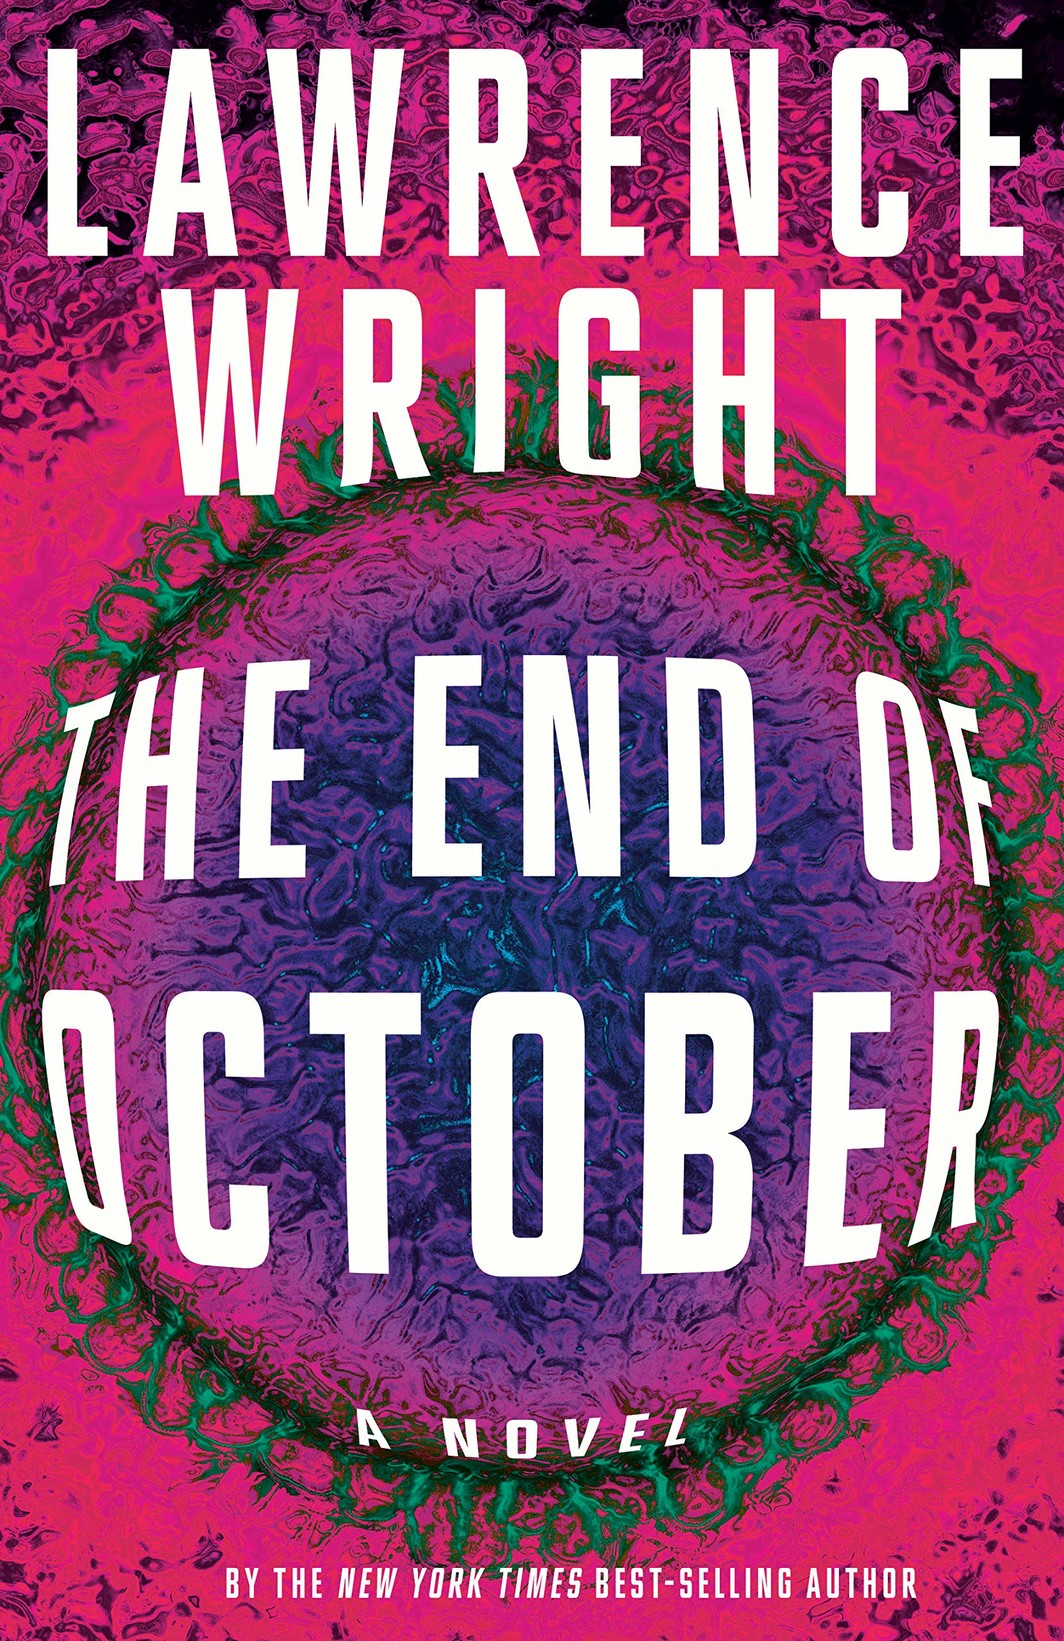 The cover of The End of October